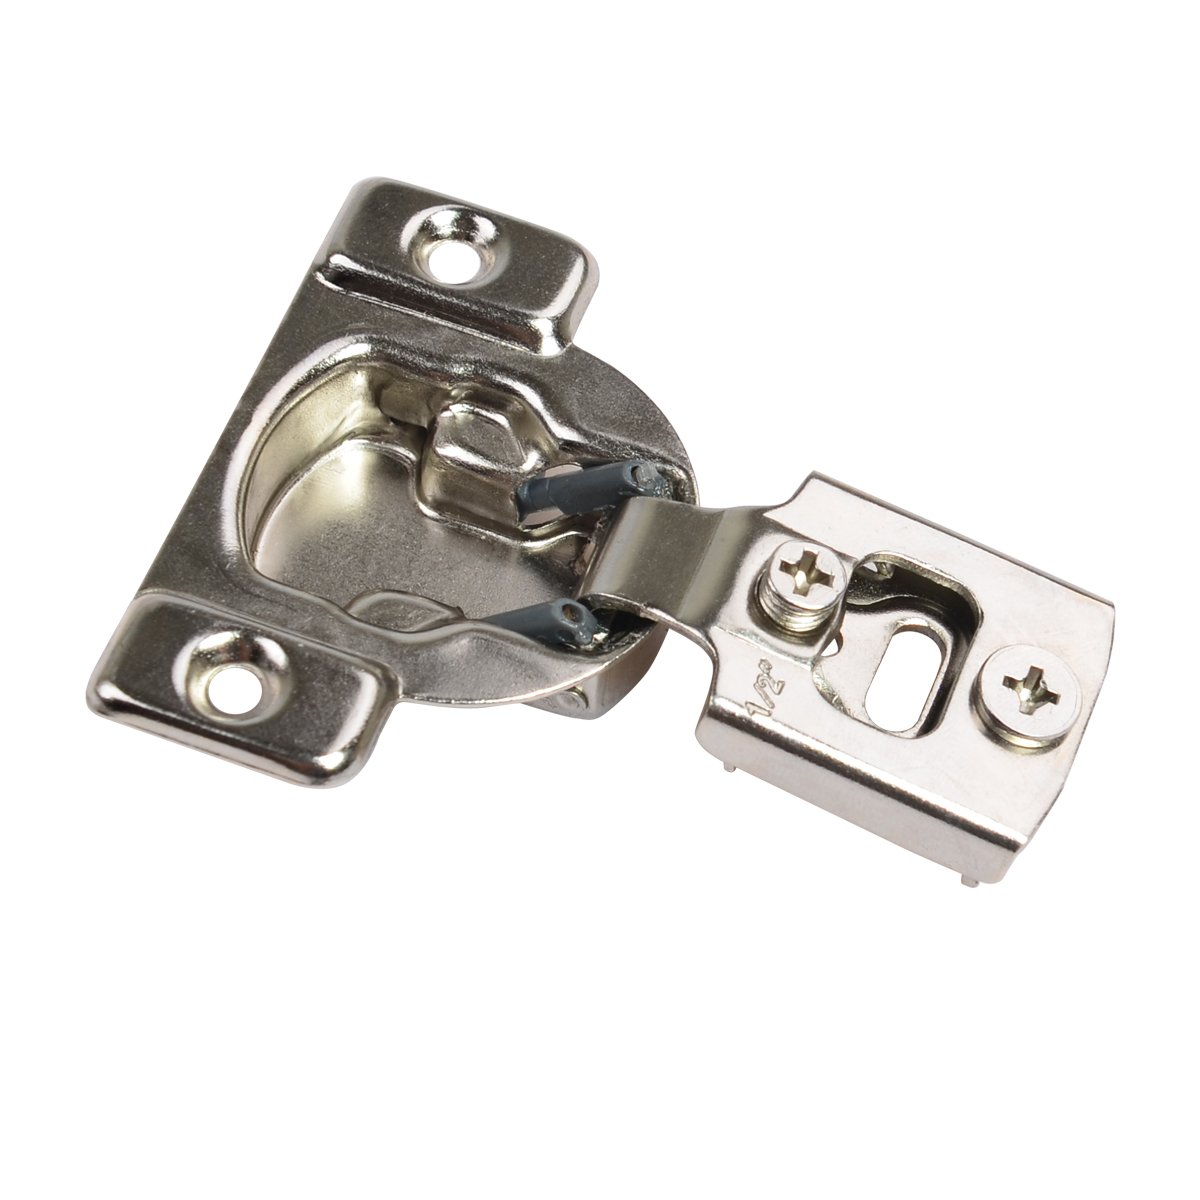 108 Degrees Compact 1/2'' Overlay 35mm Face Frame Cabinet Hinge, 10-Pack (5 Pair), Nickel Plated Finish